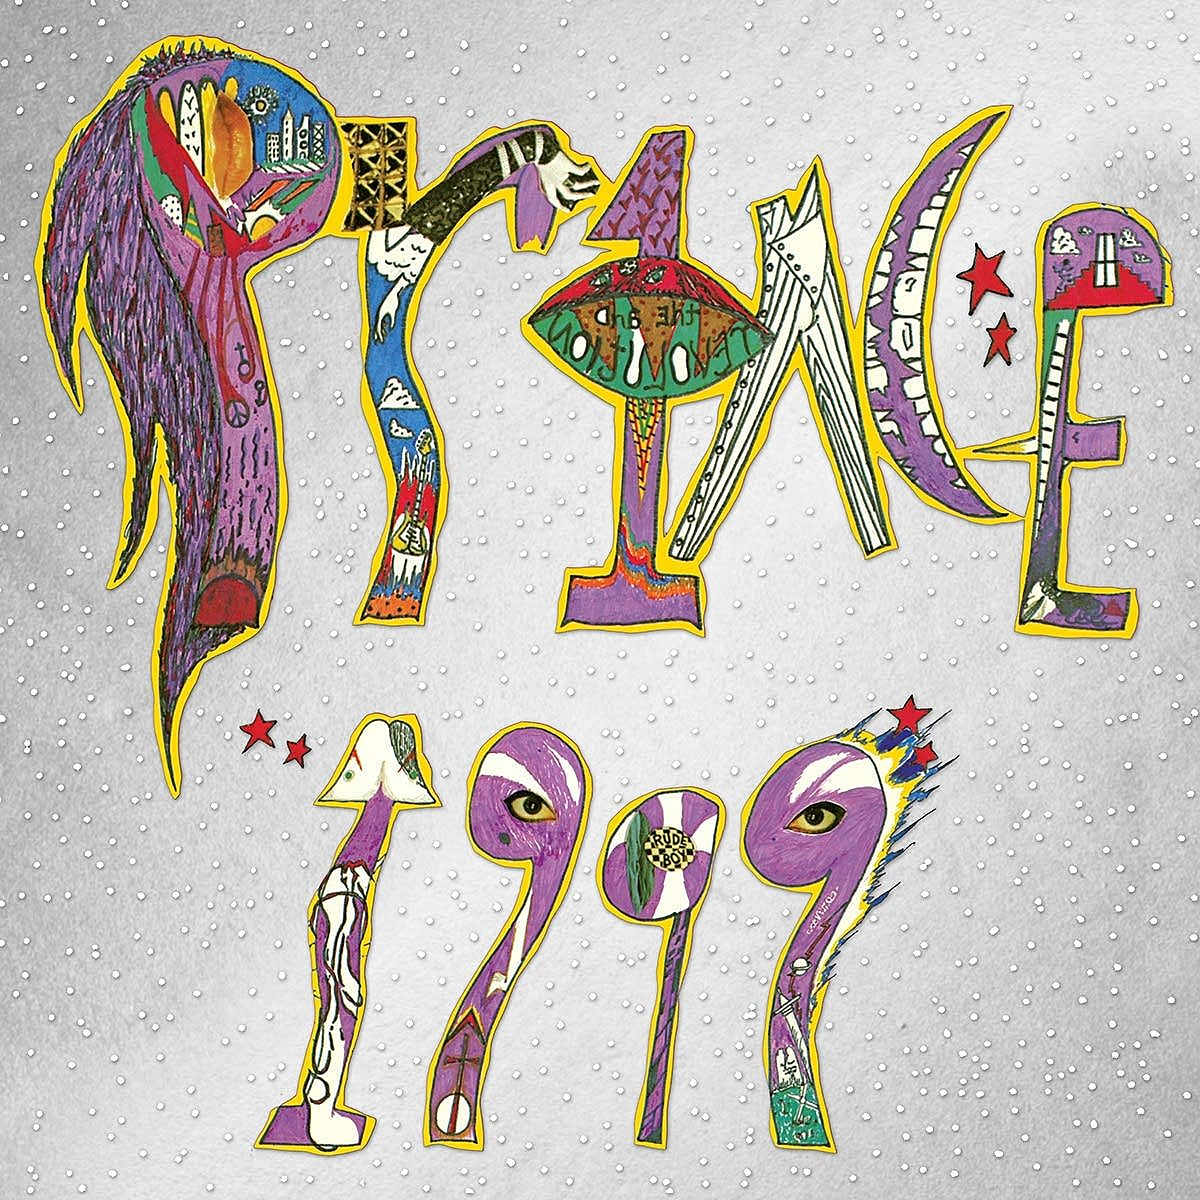 prince-1999-reissue